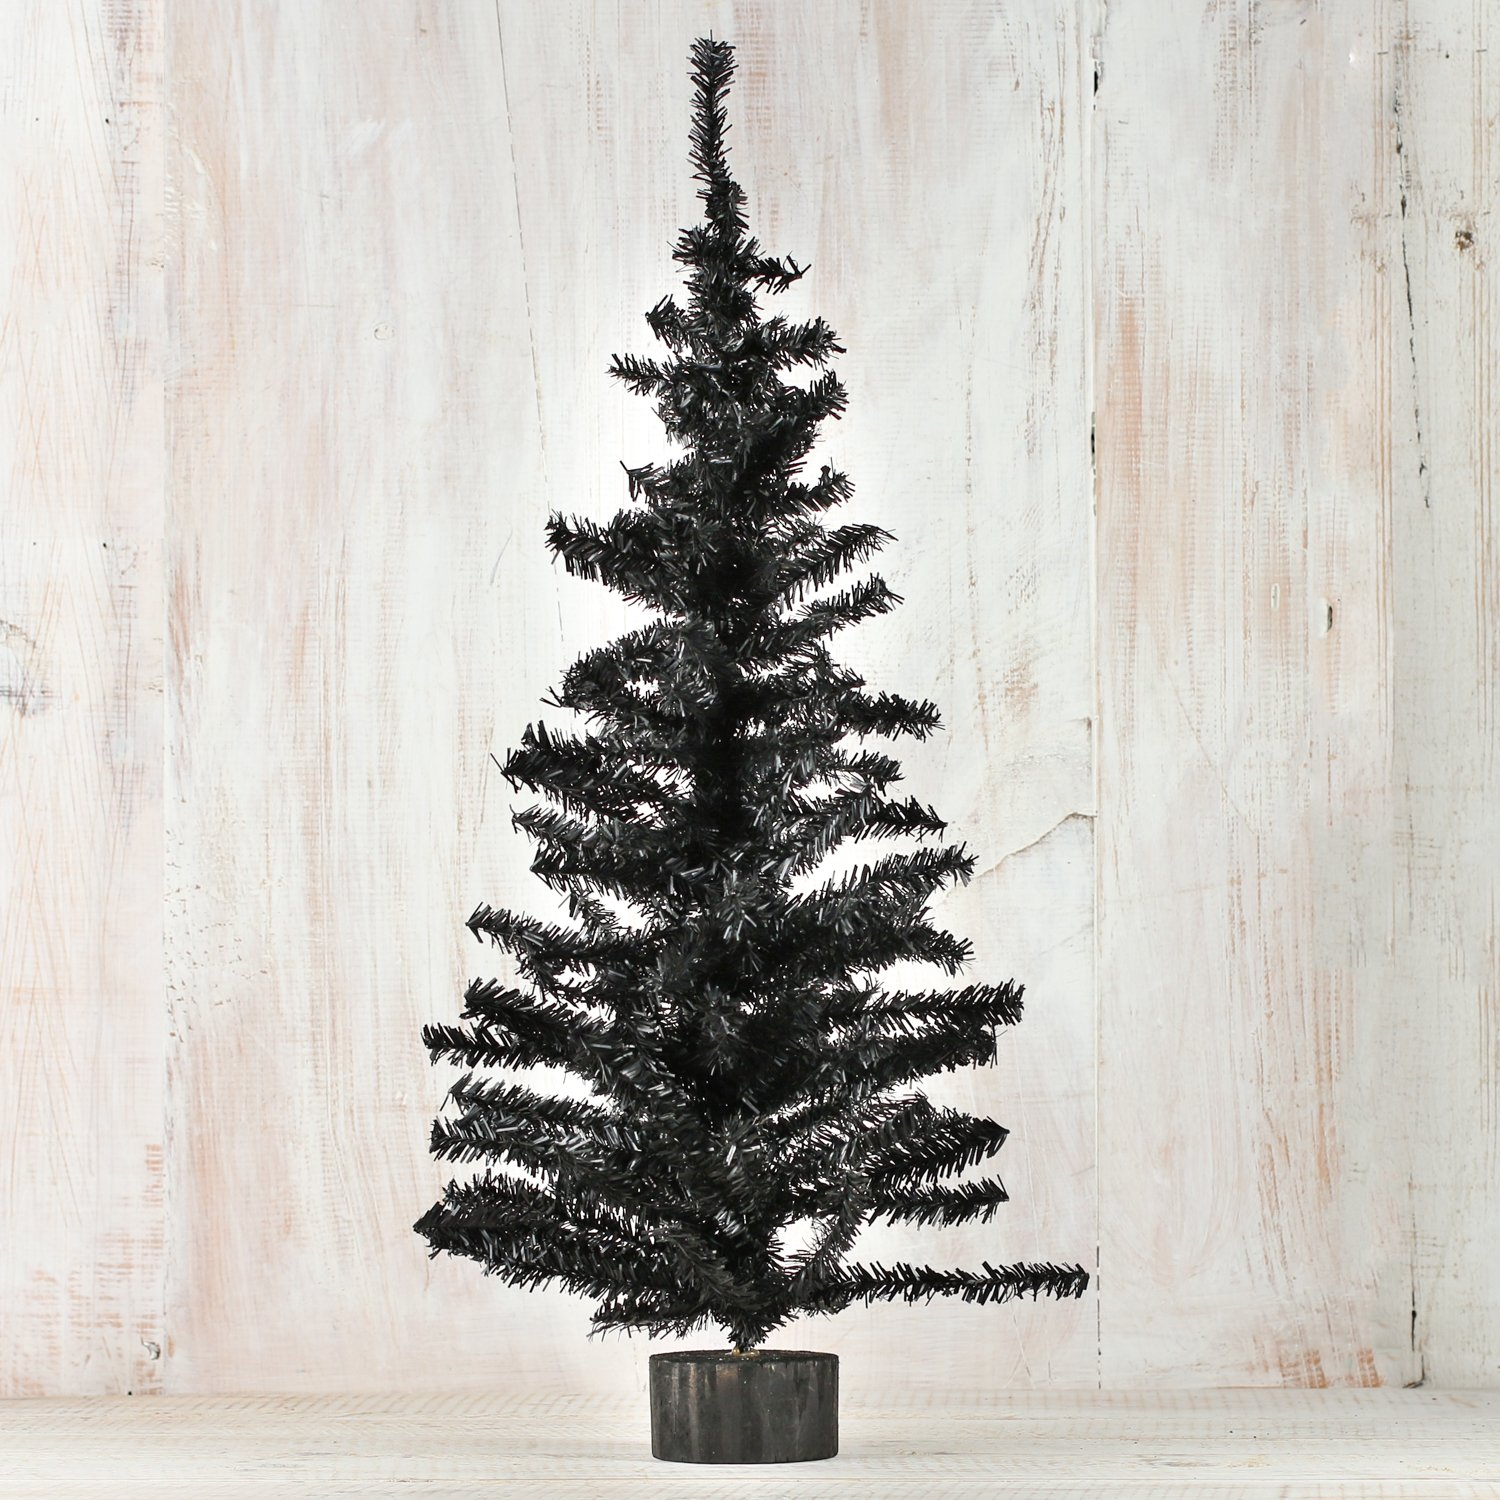 Factory Direct Craft 2 Foot Black Artificial Pine Tree for Christmas, Halloween and Year Round Decor by Factory Direct Craft